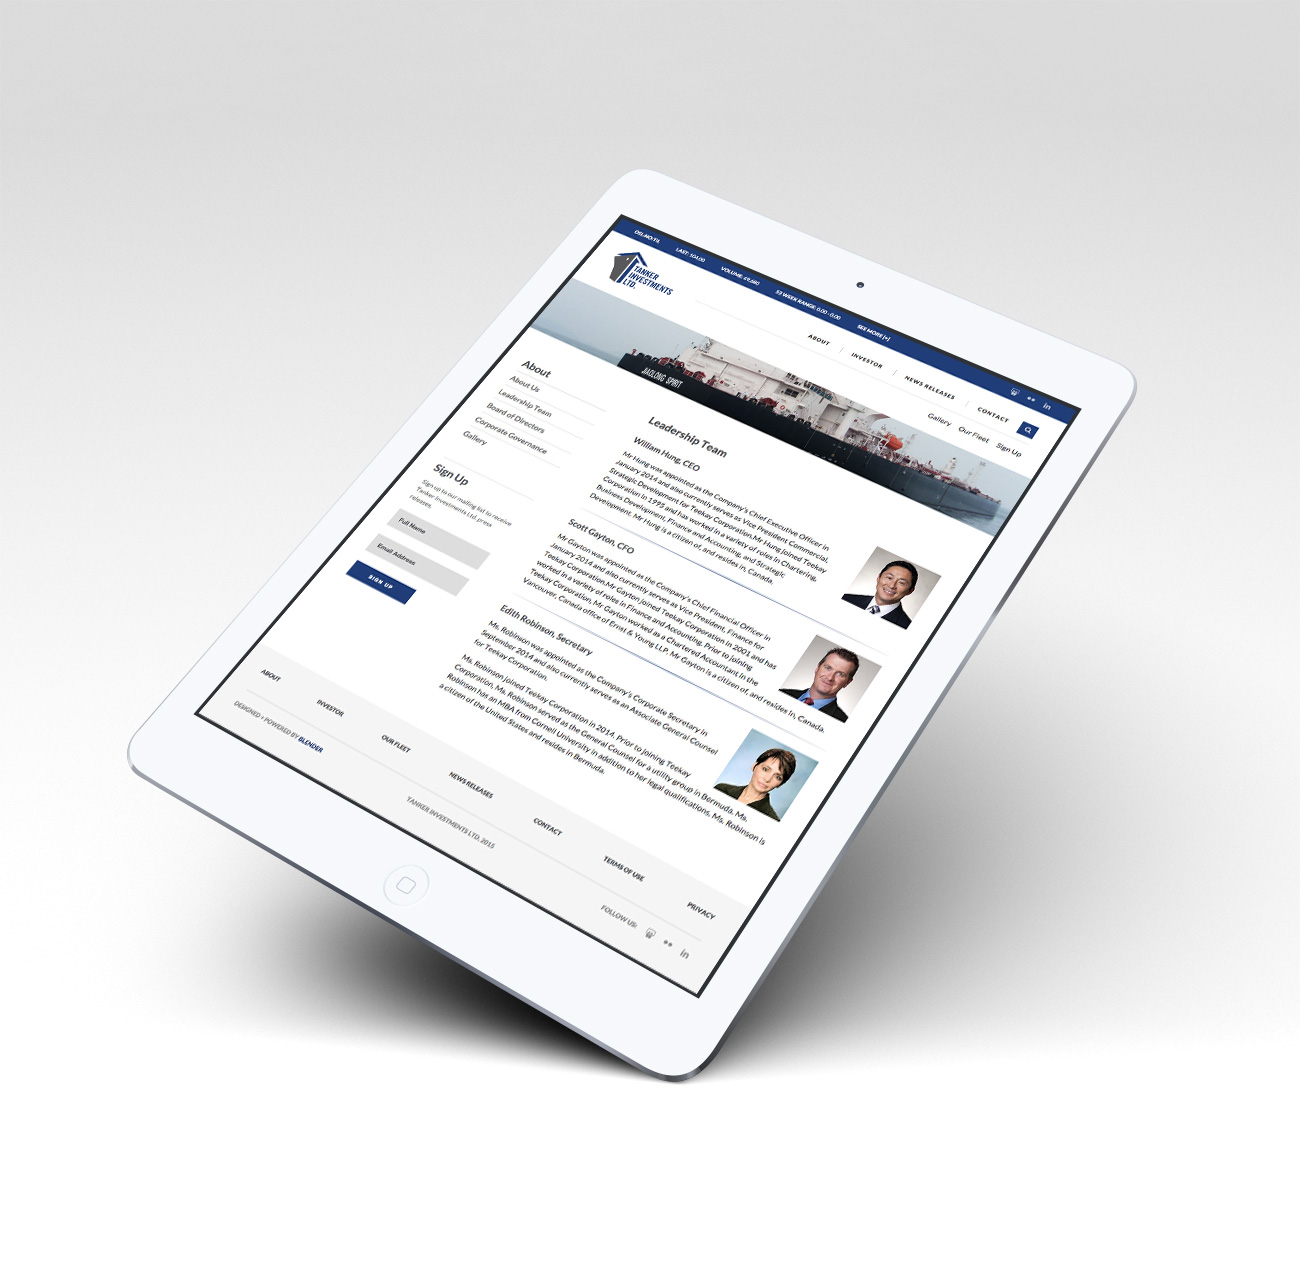 Tanker Investments Website Promo on iPad Air